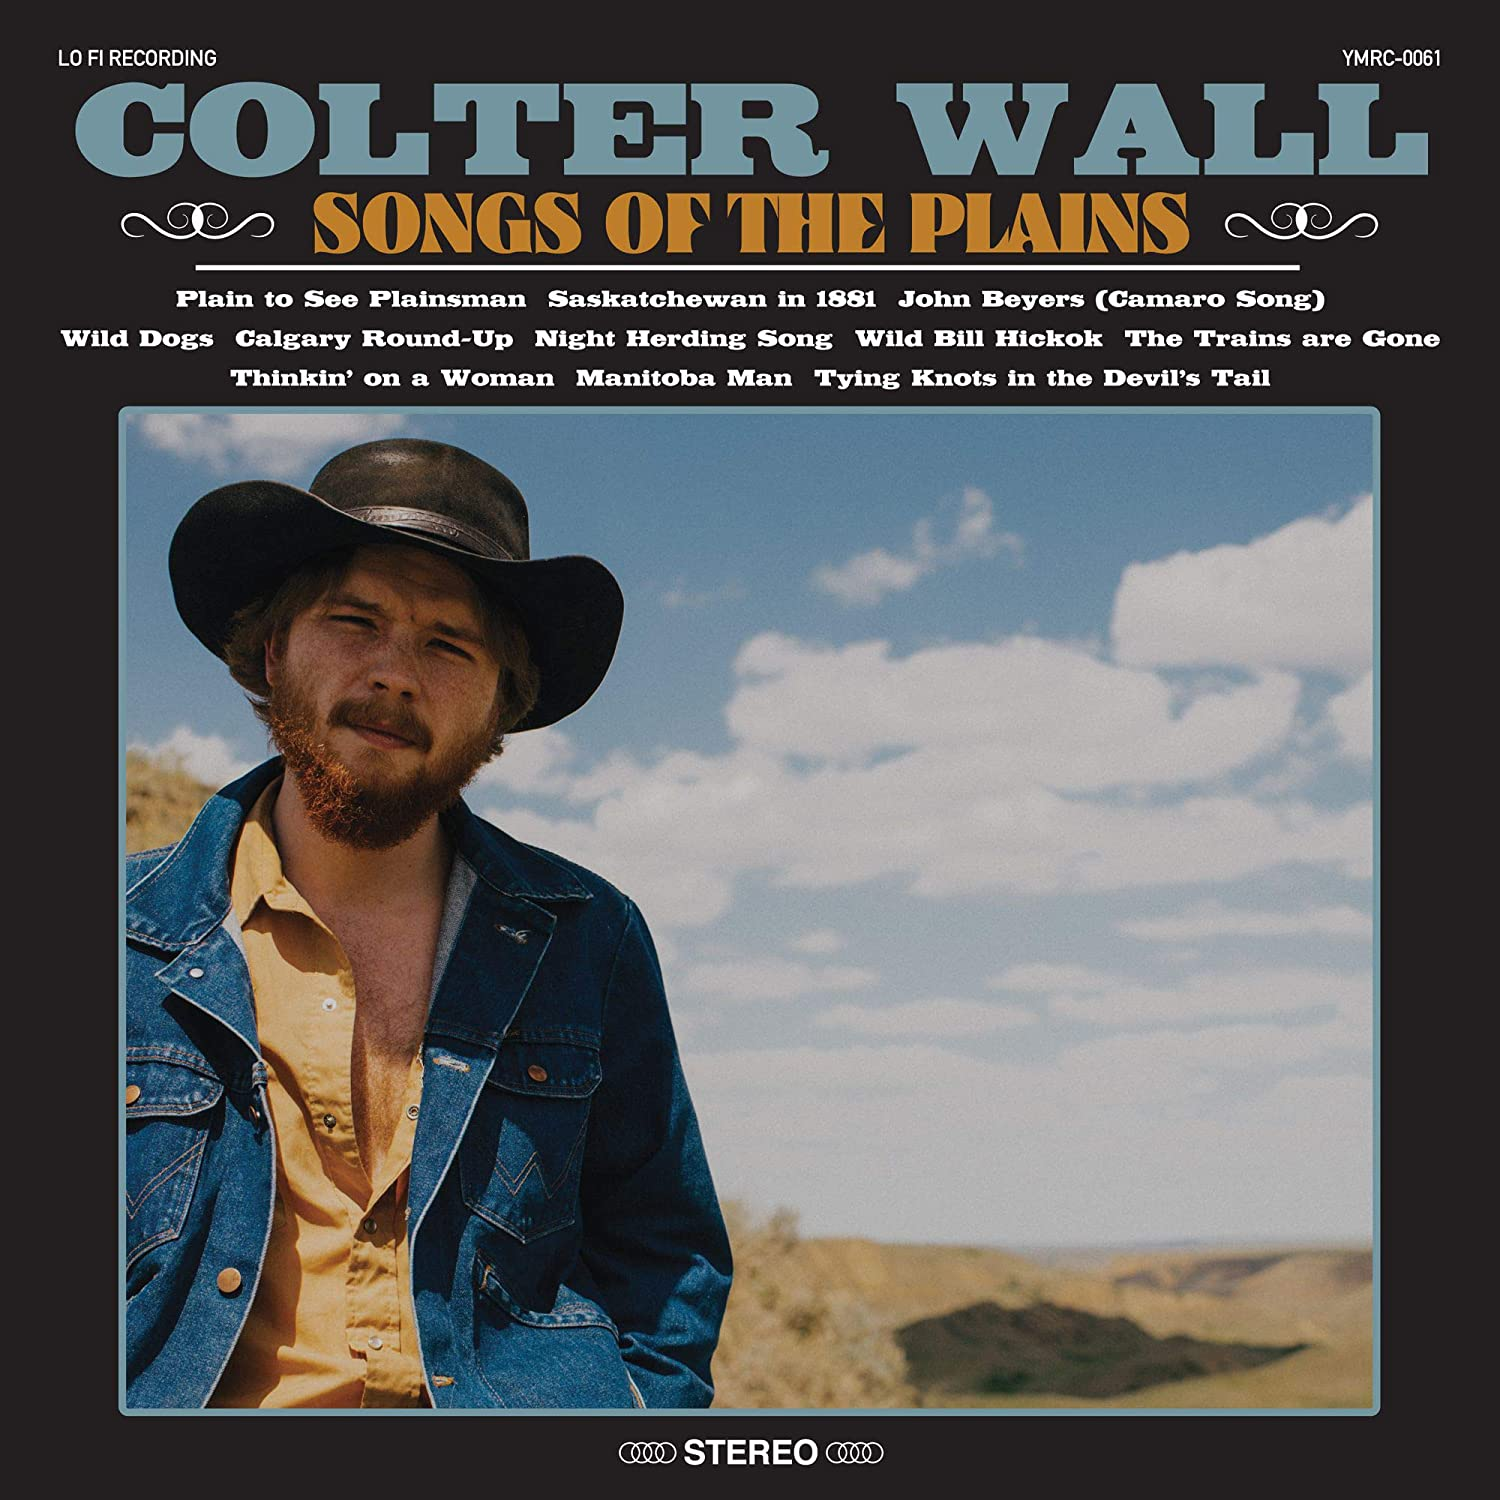 Wall, Colter/Songs Of The Plains [LP]